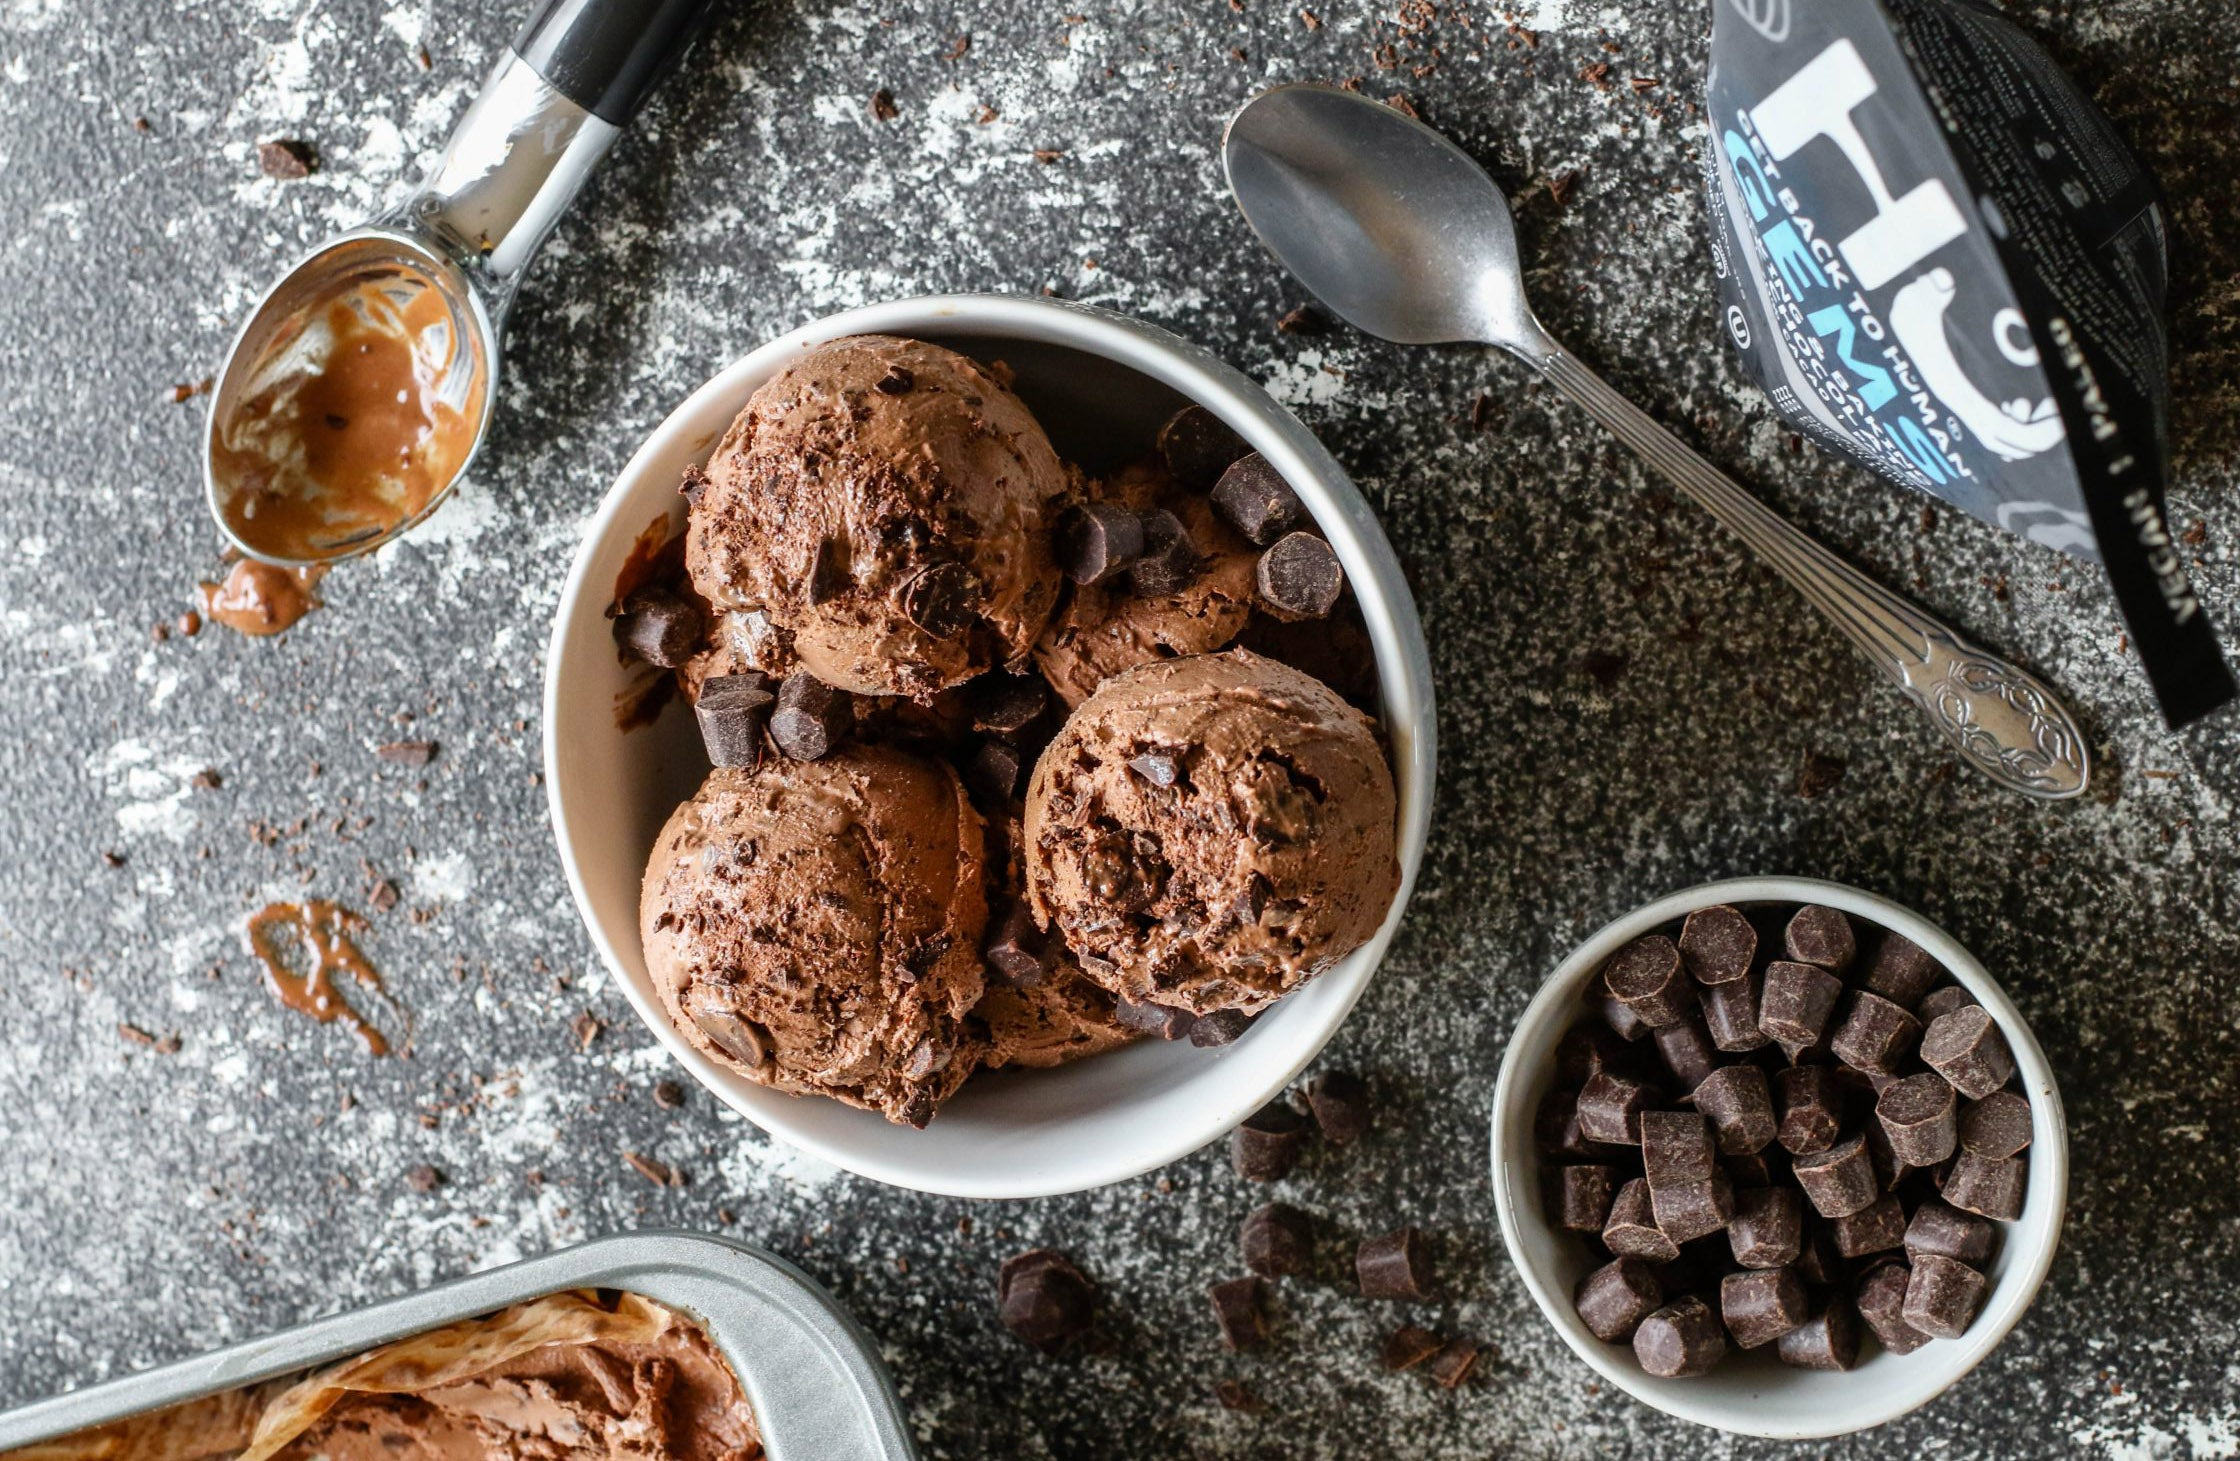 NO-CHURN HU DARK CHOCOLATE ICE CREAM